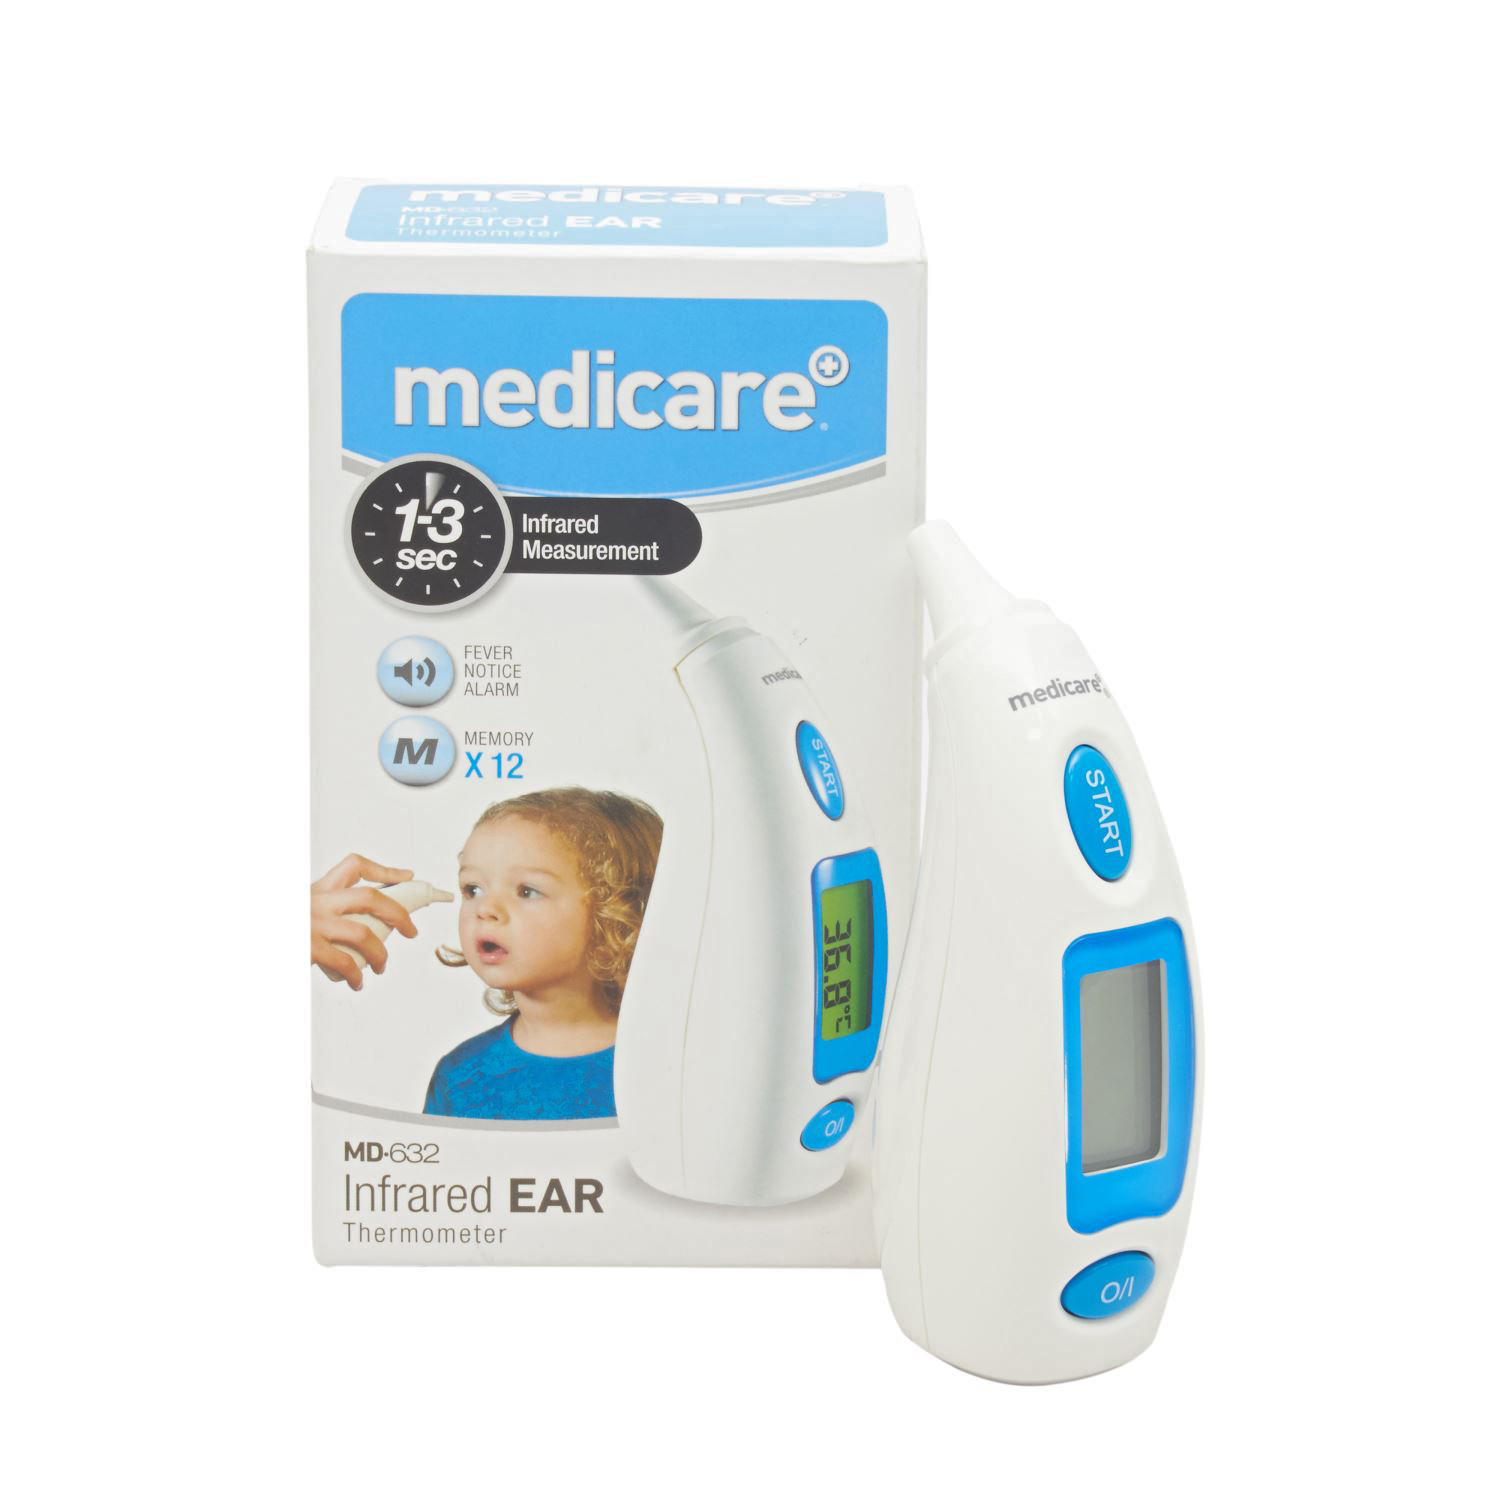 Medicare+ Infrared Ear Thermometer MD632